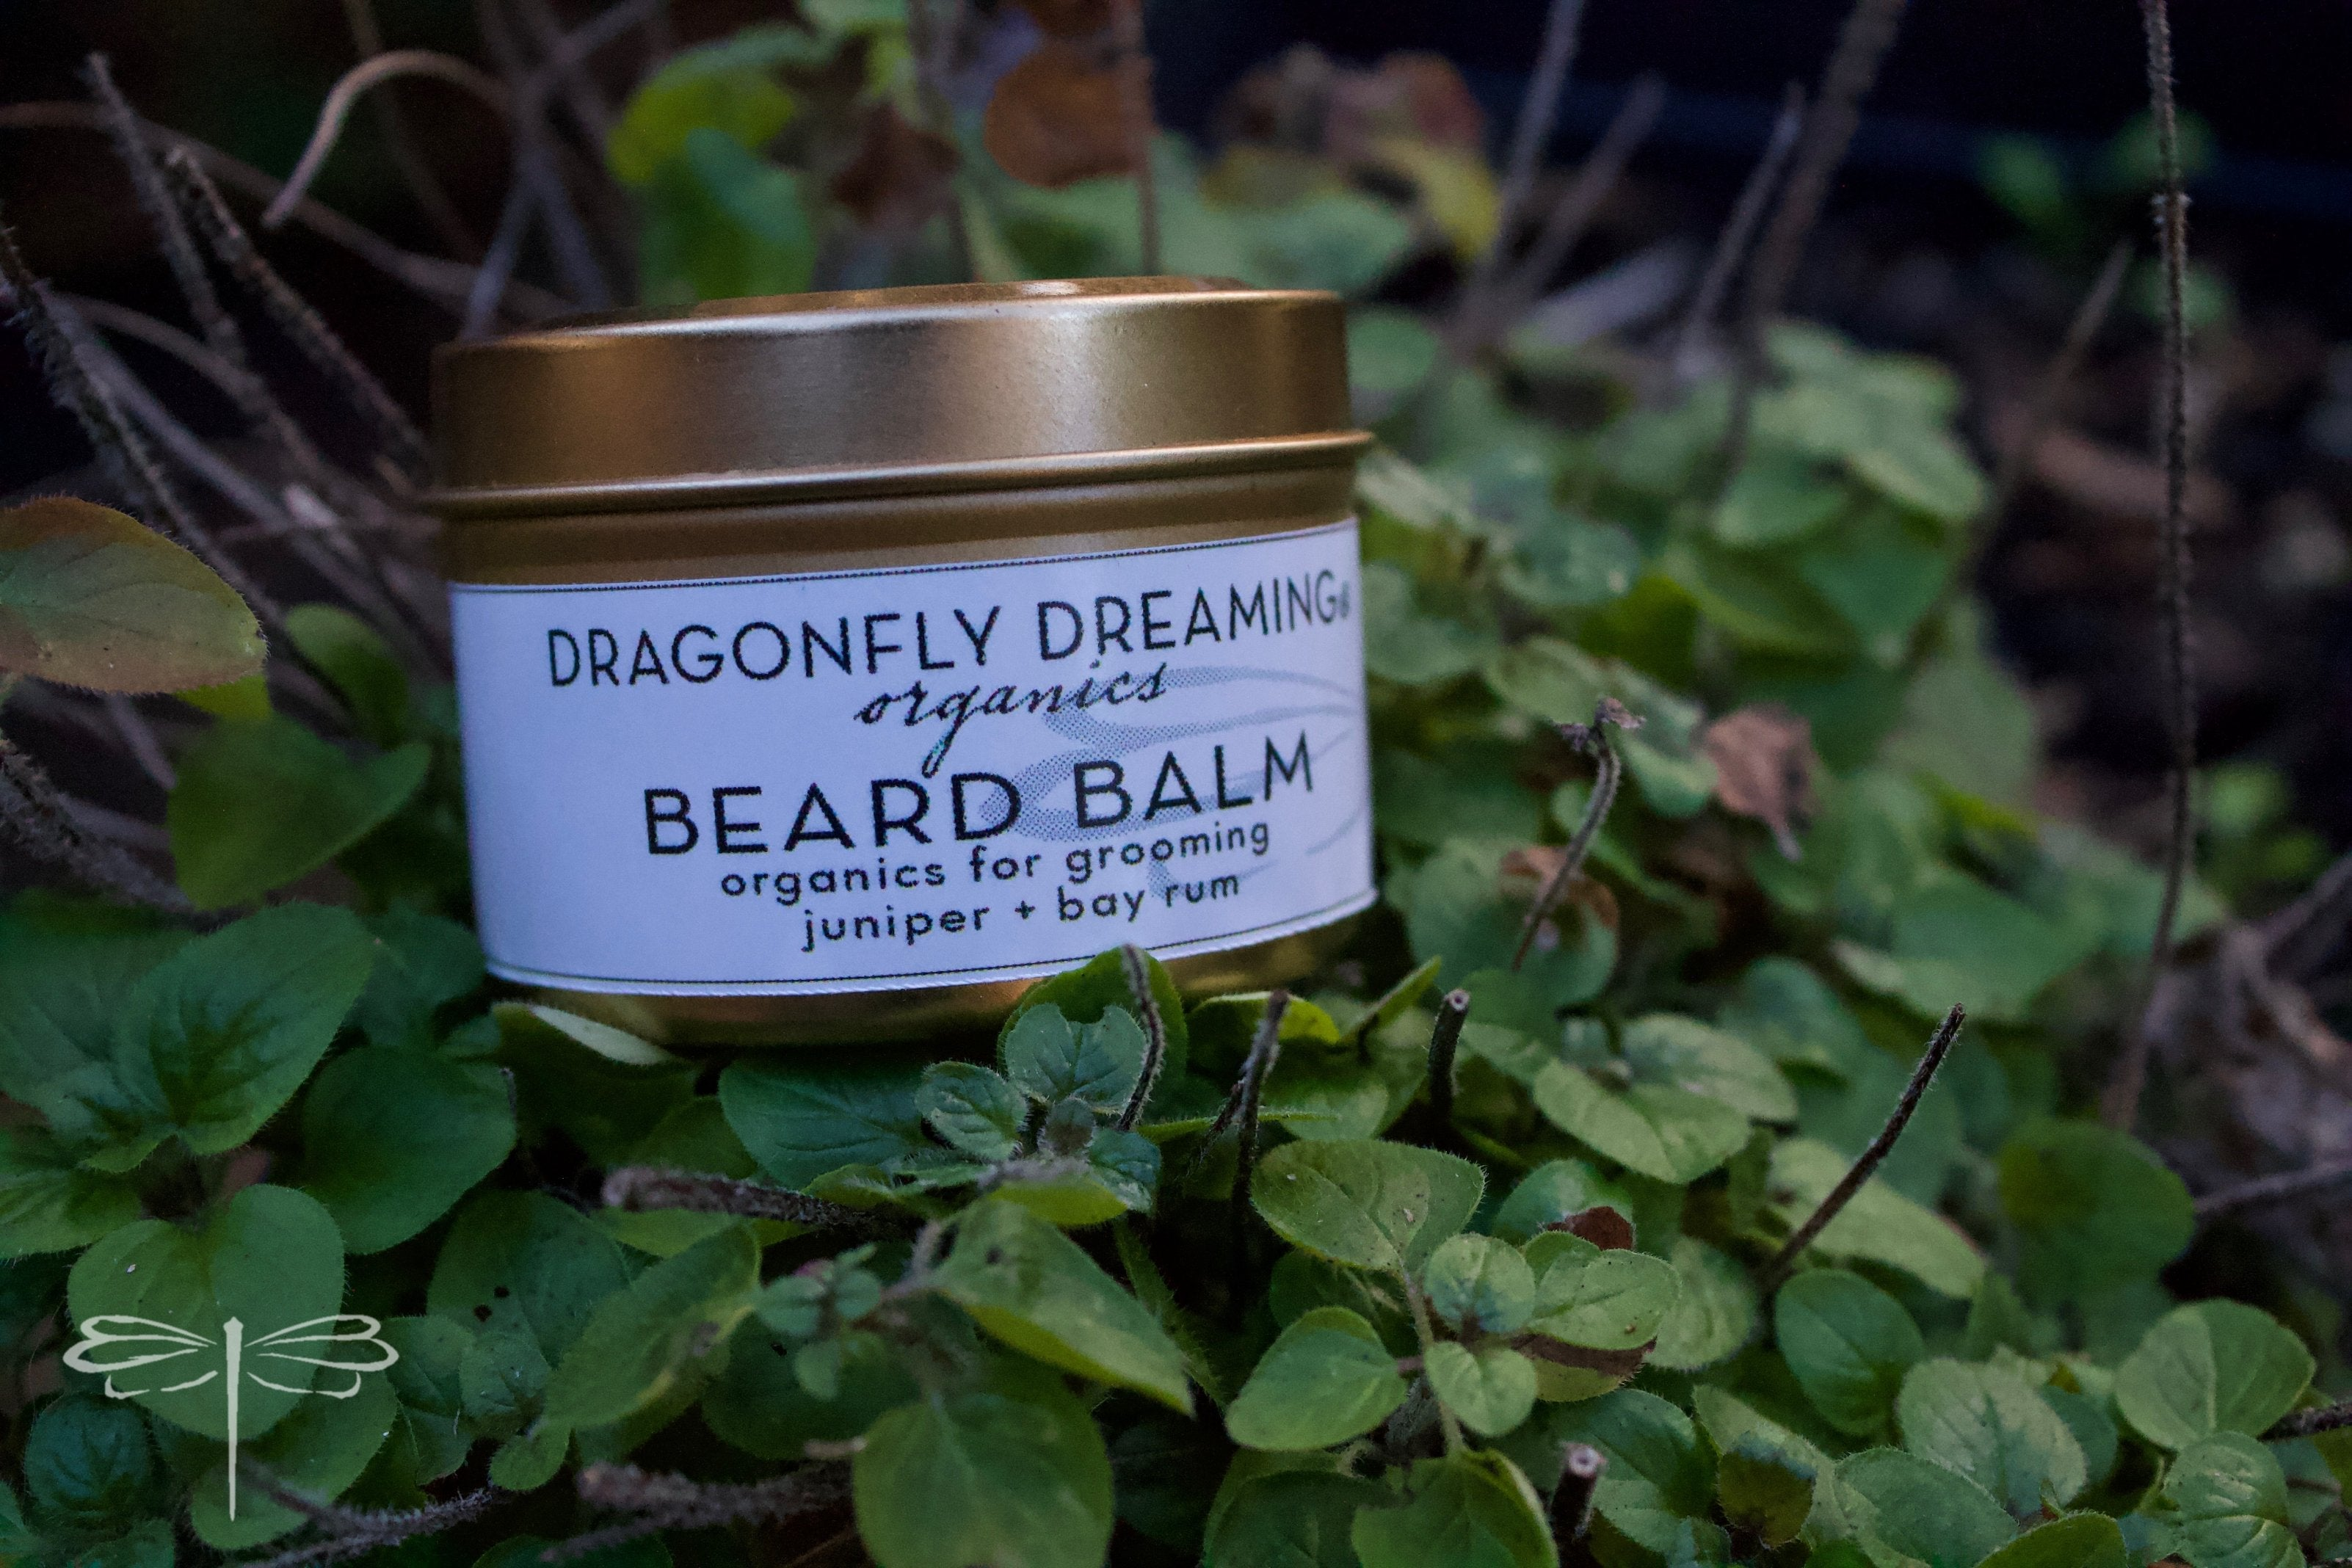 Dragonfly Dreaming® Juniper + Bay Rum Scented Beard Balm to calm and balm irritated skin